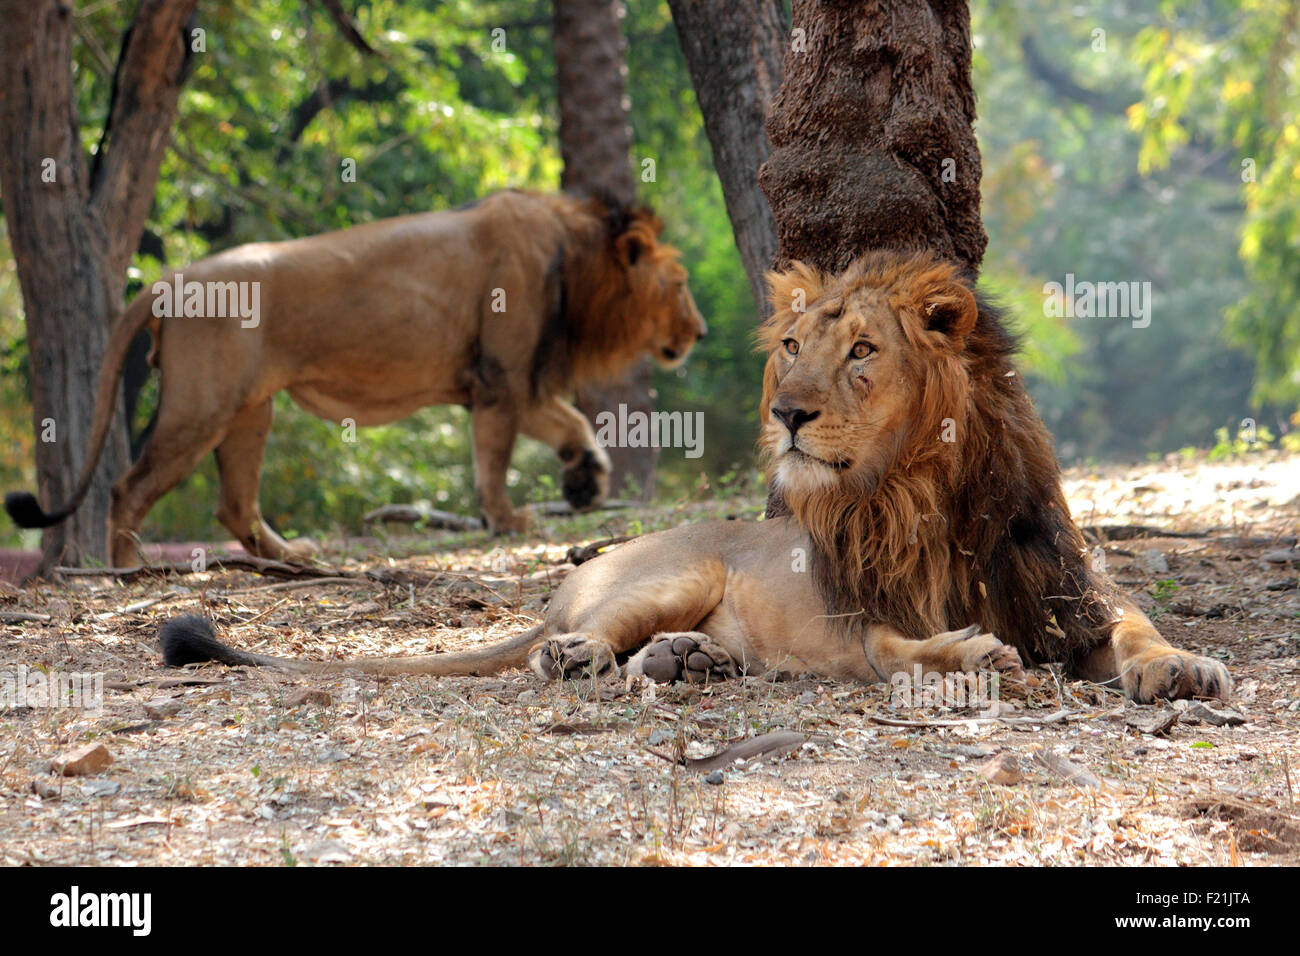 Indian Lion Gir forest Gujarat, India Stock Photo ...